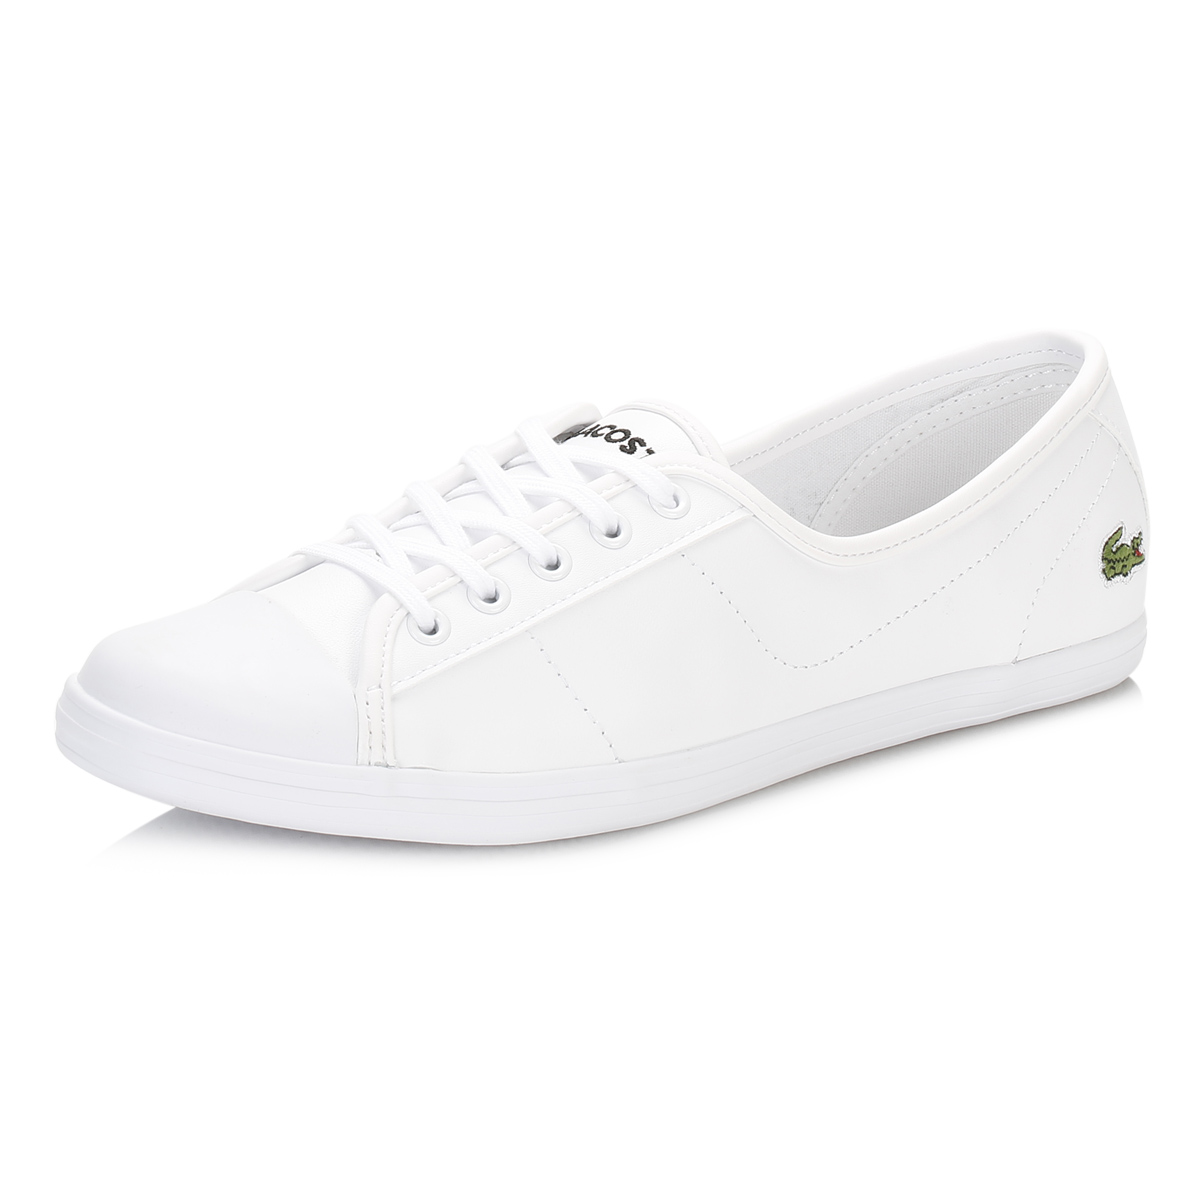 925481dd4 Details about Lacoste Womens Trainers White Ziane BL 1 SPW Leather Lace Up  Shoes Casual Flats